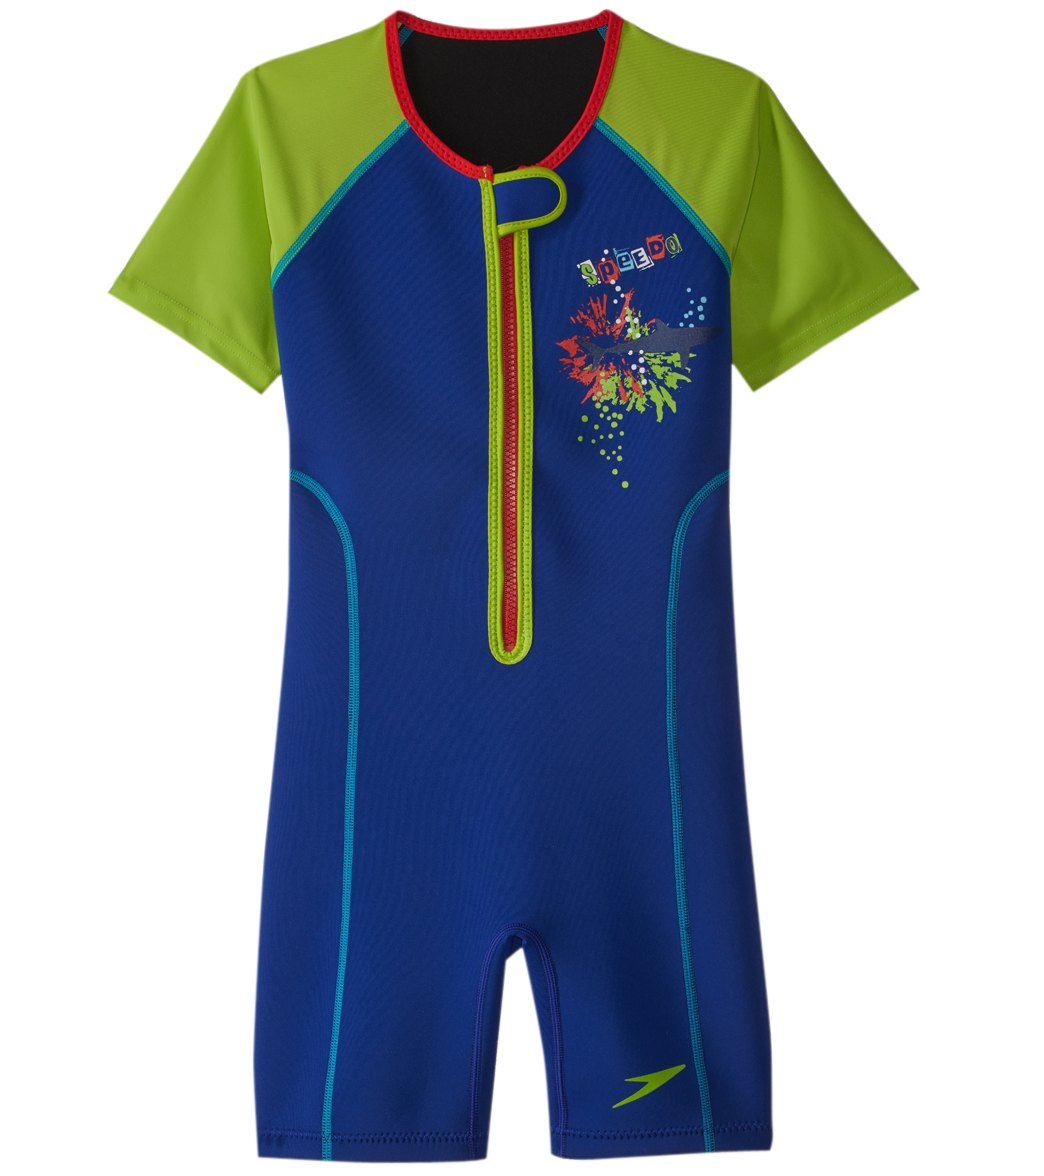 cd18e70965 Speedo Boys' UPF 50+ Thermal Suit (2T-10) at SwimOutlet.com